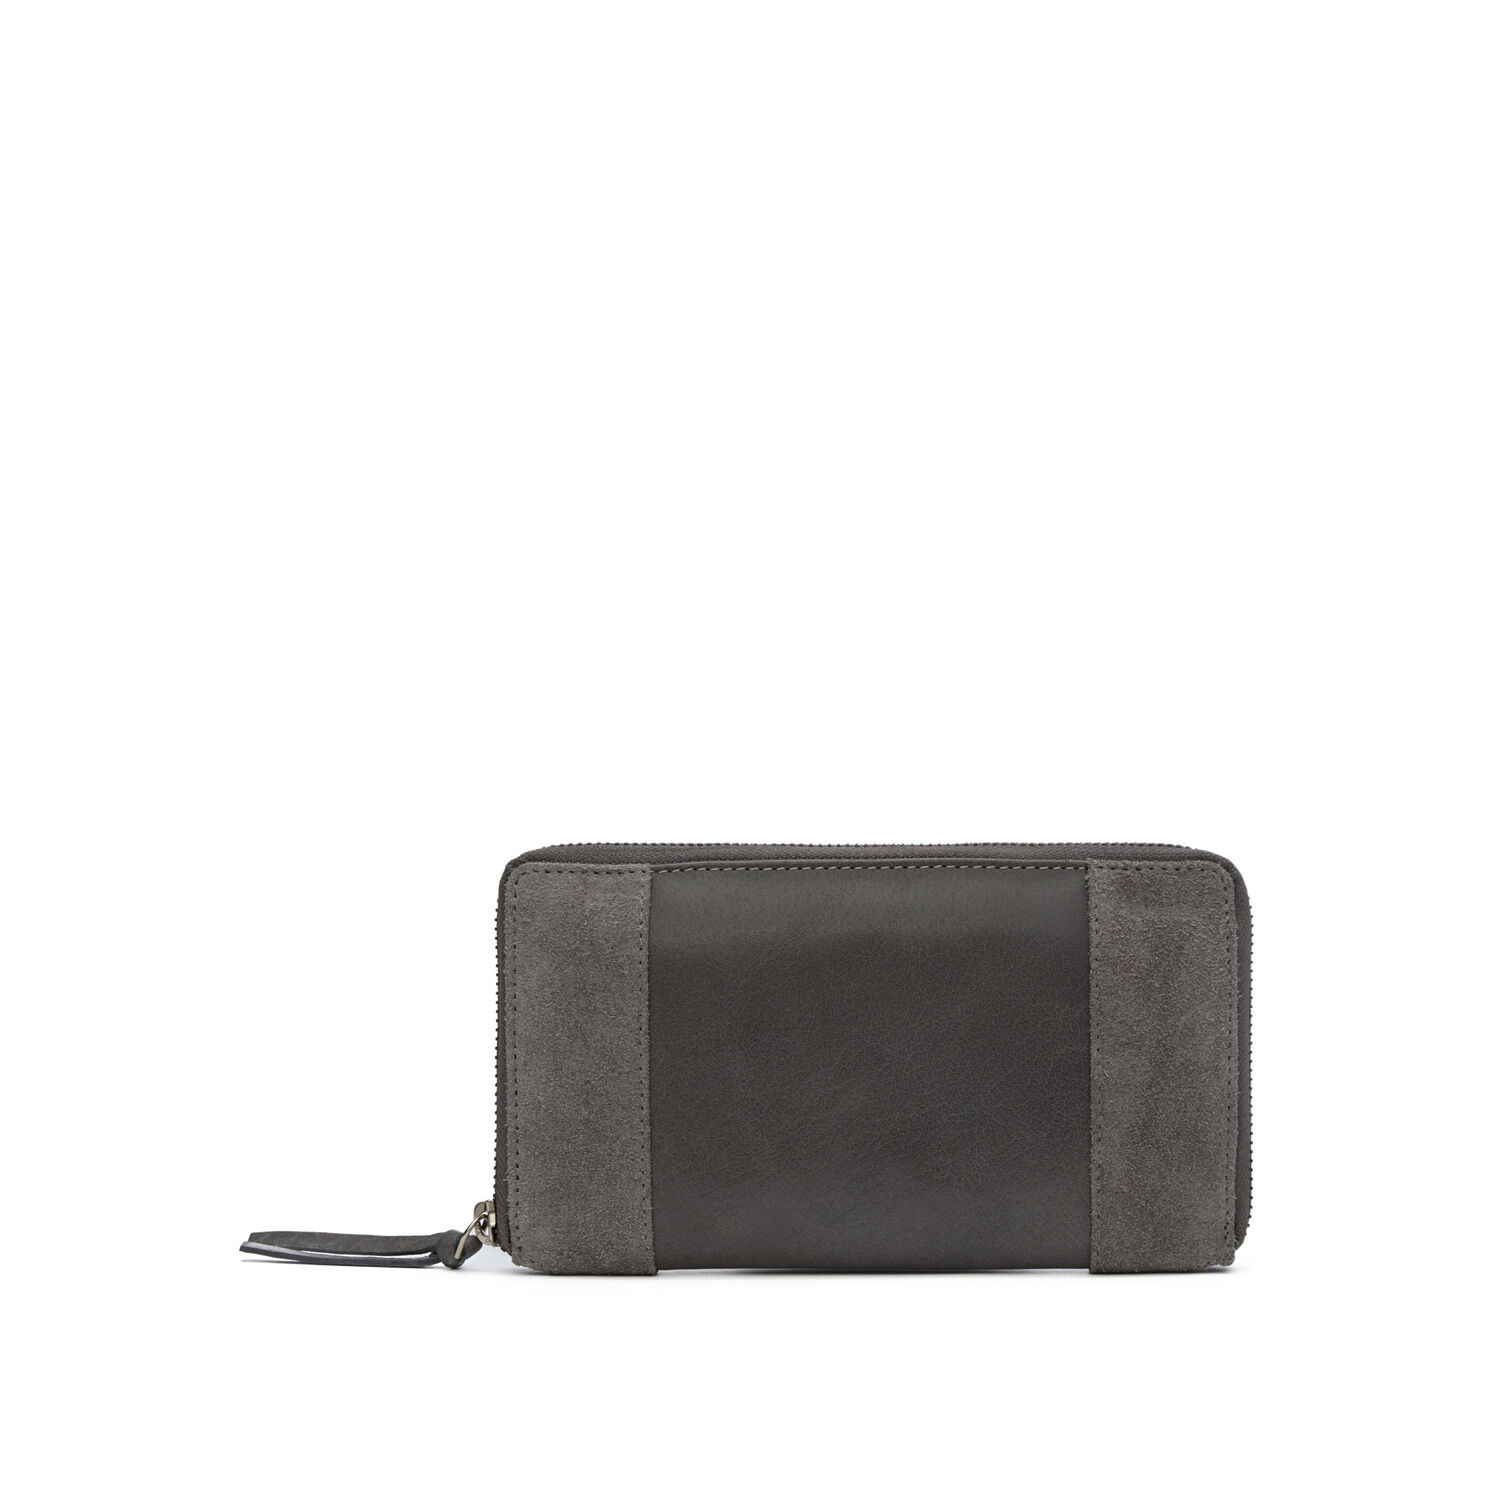 Warehouse, SUEDE AND LEATHER PURSE Light Grey 1